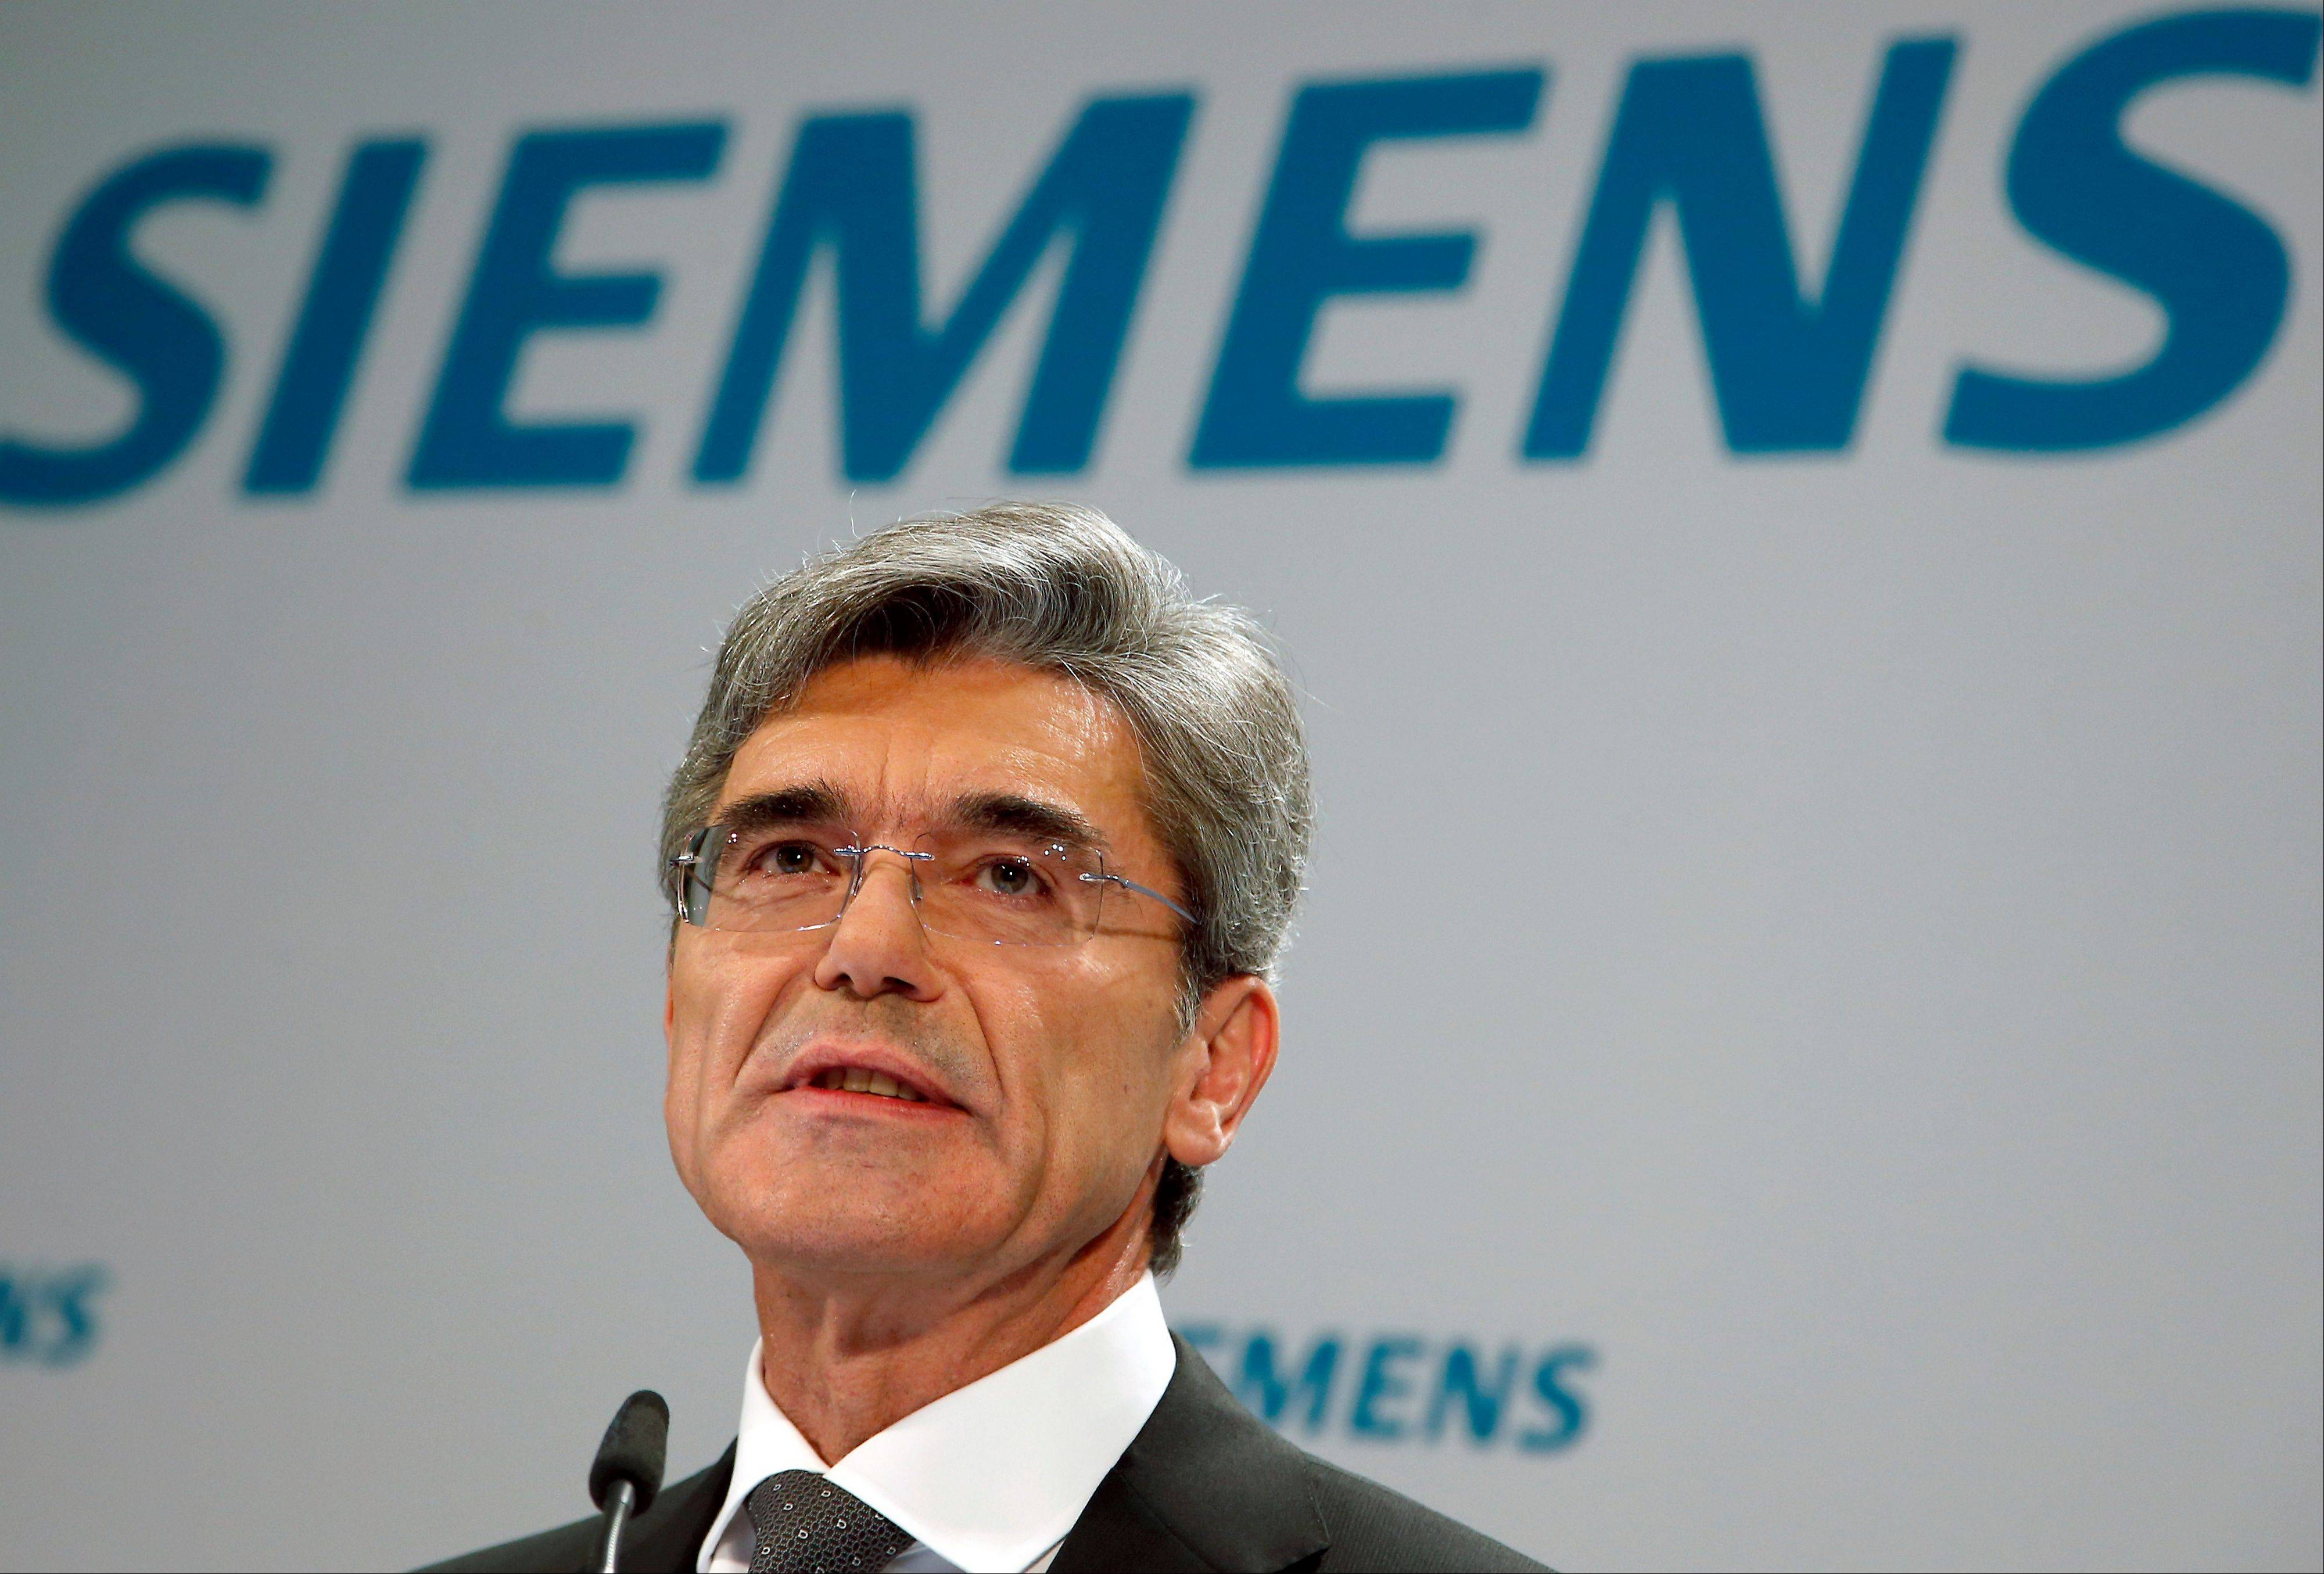 Joe Kaeser, President and CEO of Siemens